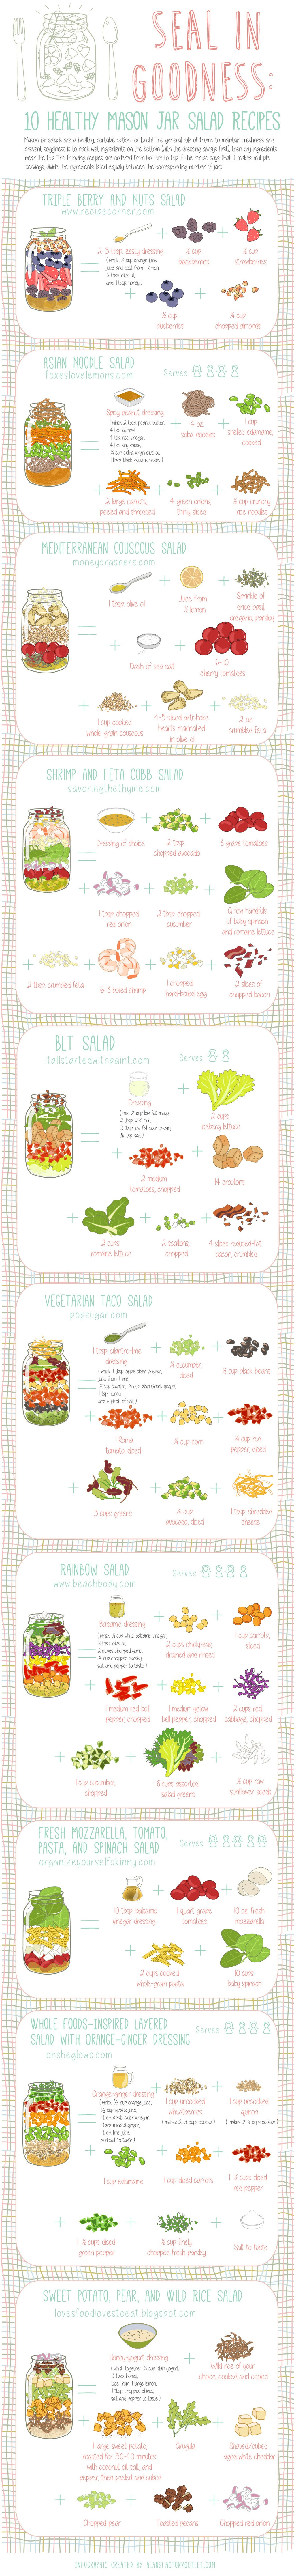 Goodness in a Jar: 10 Deliciously Healthy Mason Jar Salad Recipes - Infographic